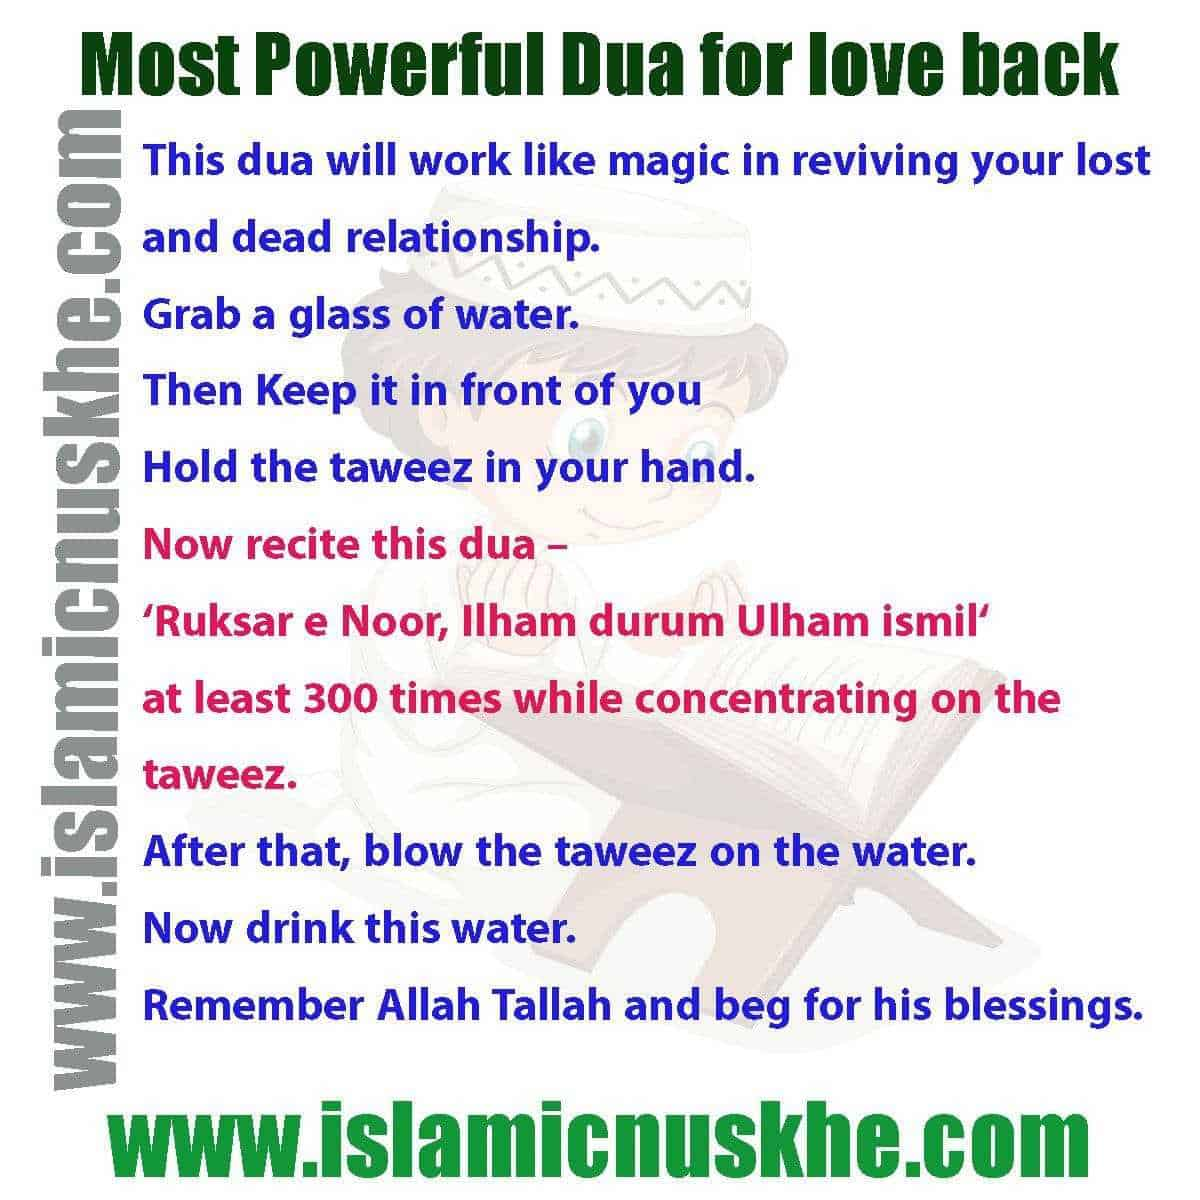 How To Perform Islamic Dua For Getting True Love Back Step by Step